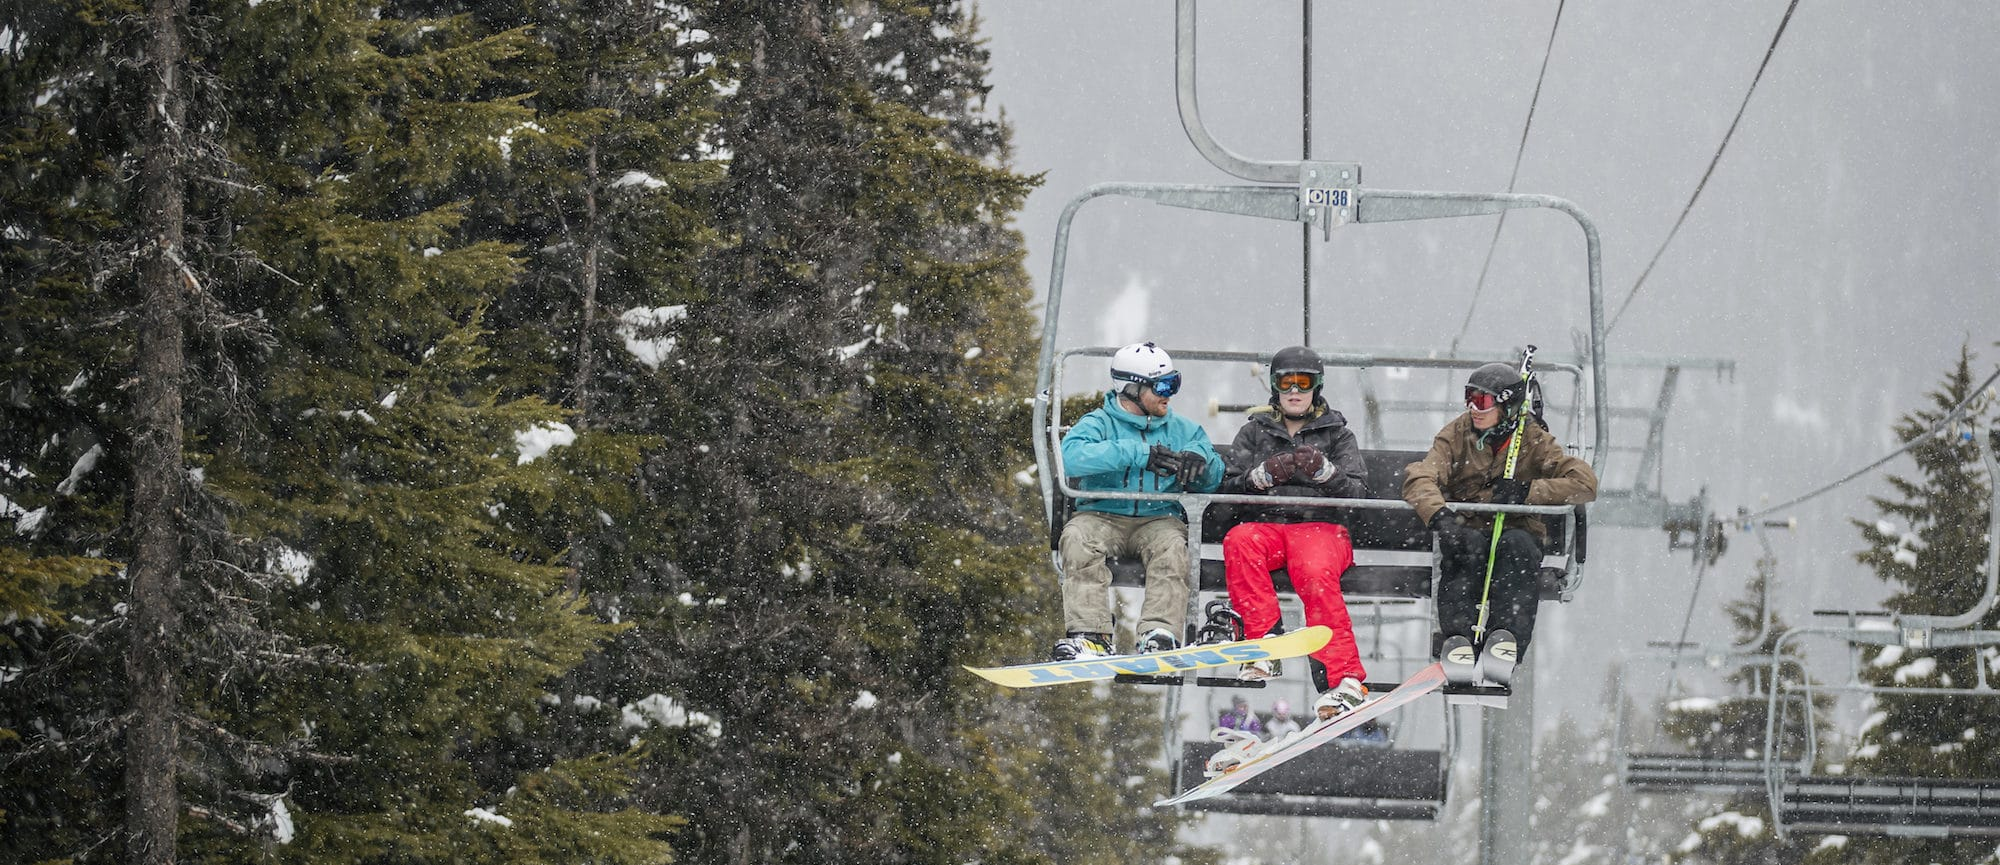 A photograph of three people riding a chairlift. It is winter and they are wearing ski and snowboard gear and talking to each other